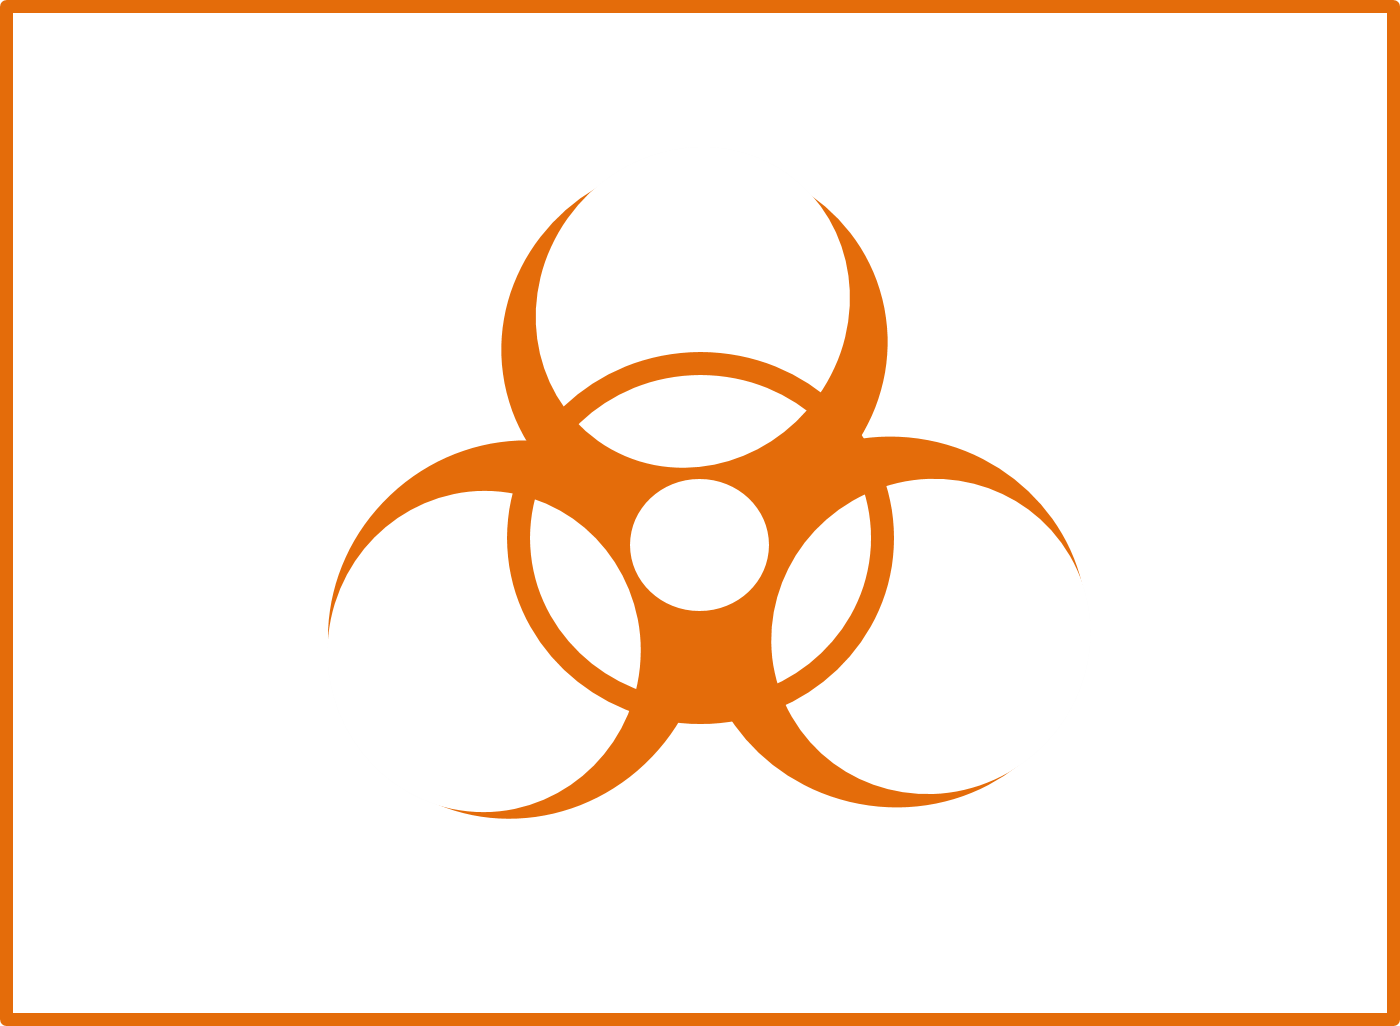 Regulated Biohazardous Materials Icon